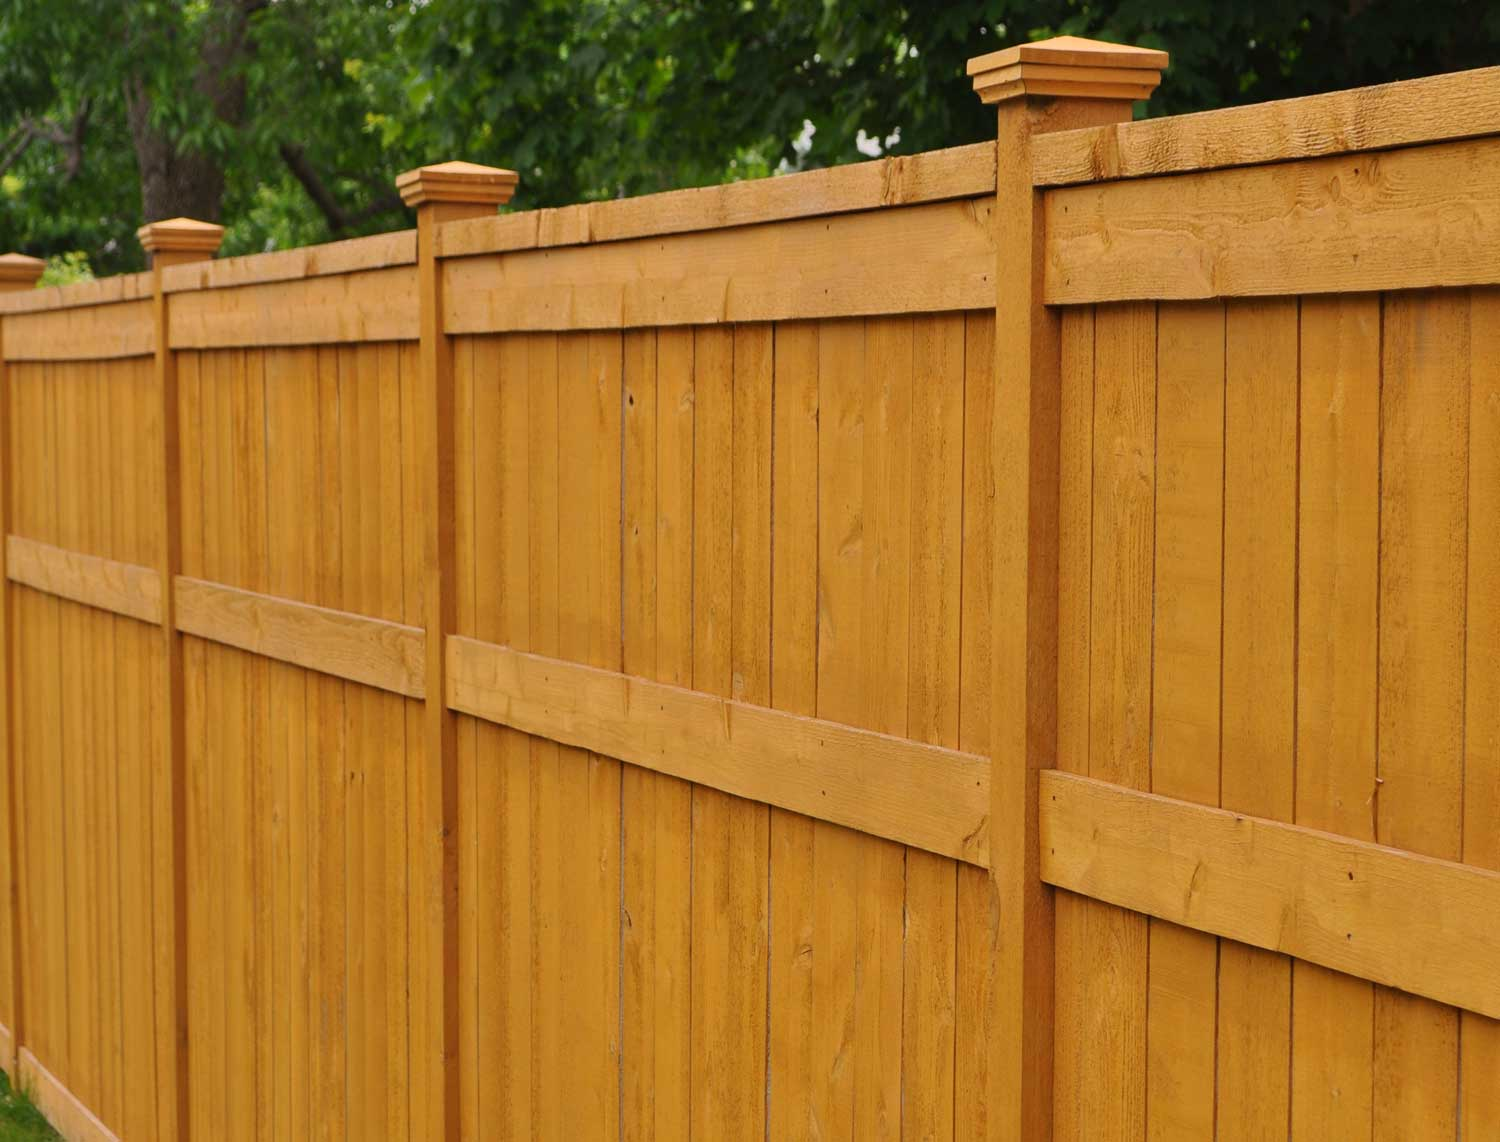 Find Professional Fence Installers Near You And Get Free